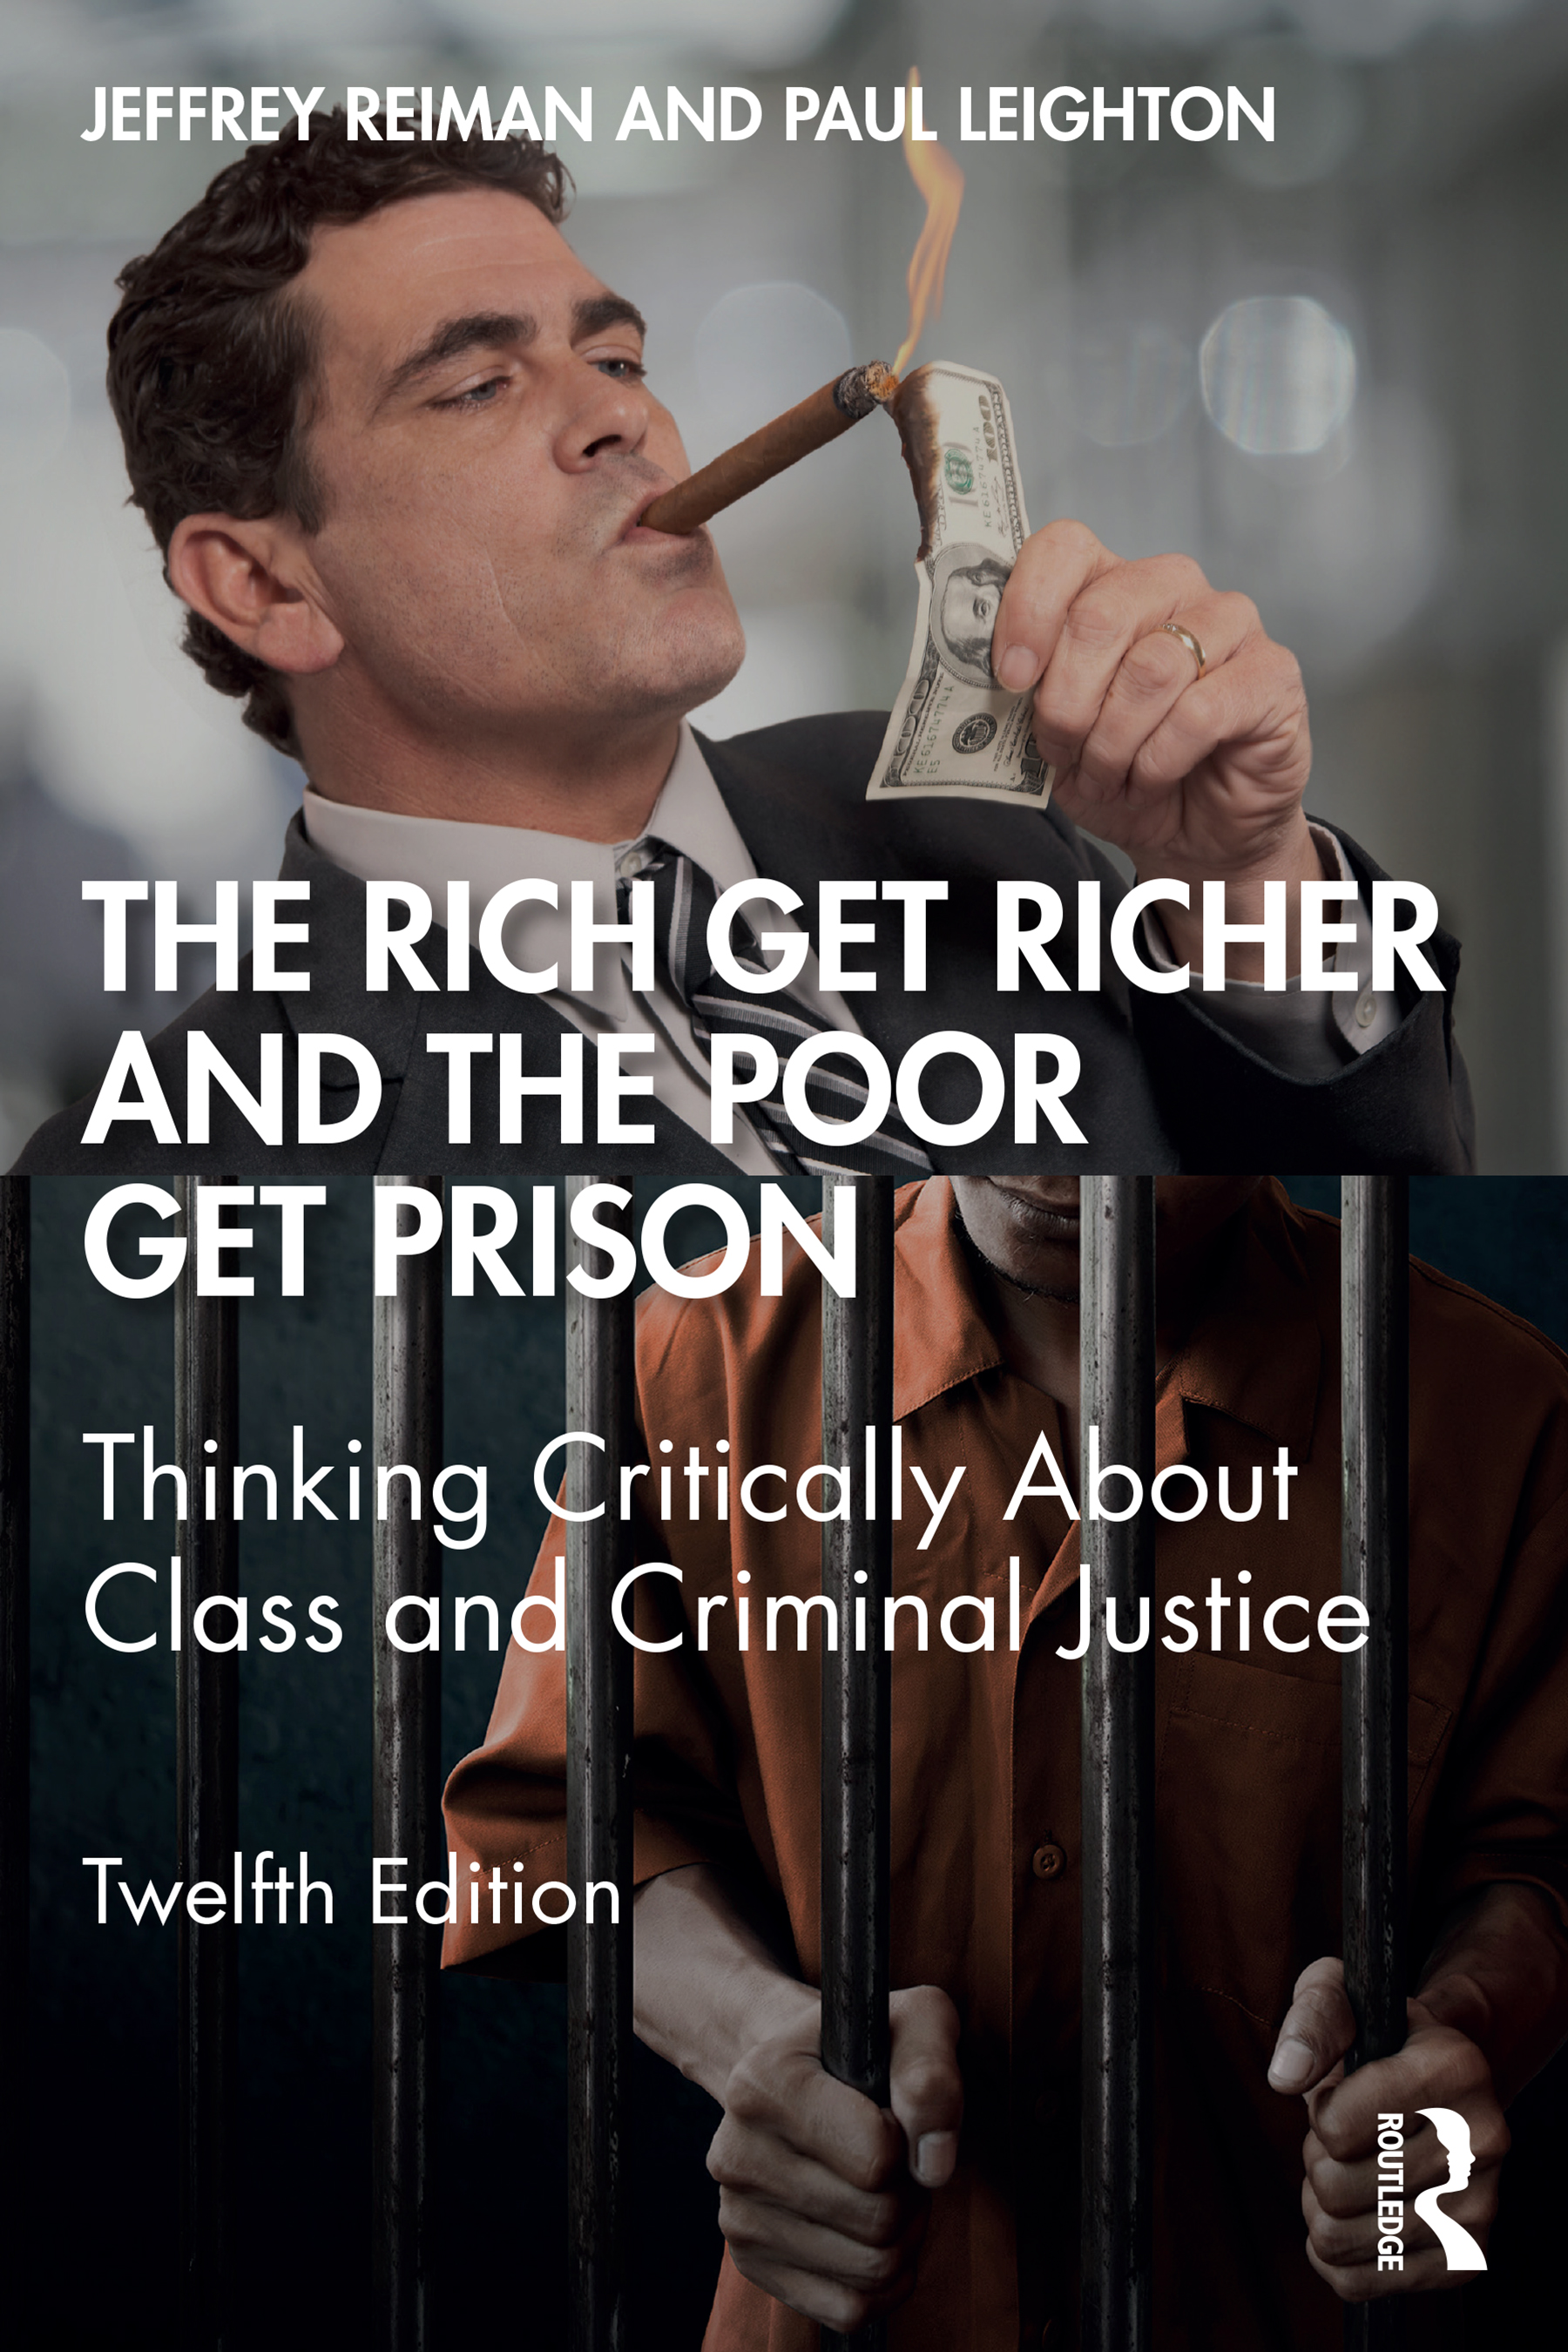 The Rich Get Richer and the Poor Get Prison: Thinking Critically About Class and Criminal Justice book cover